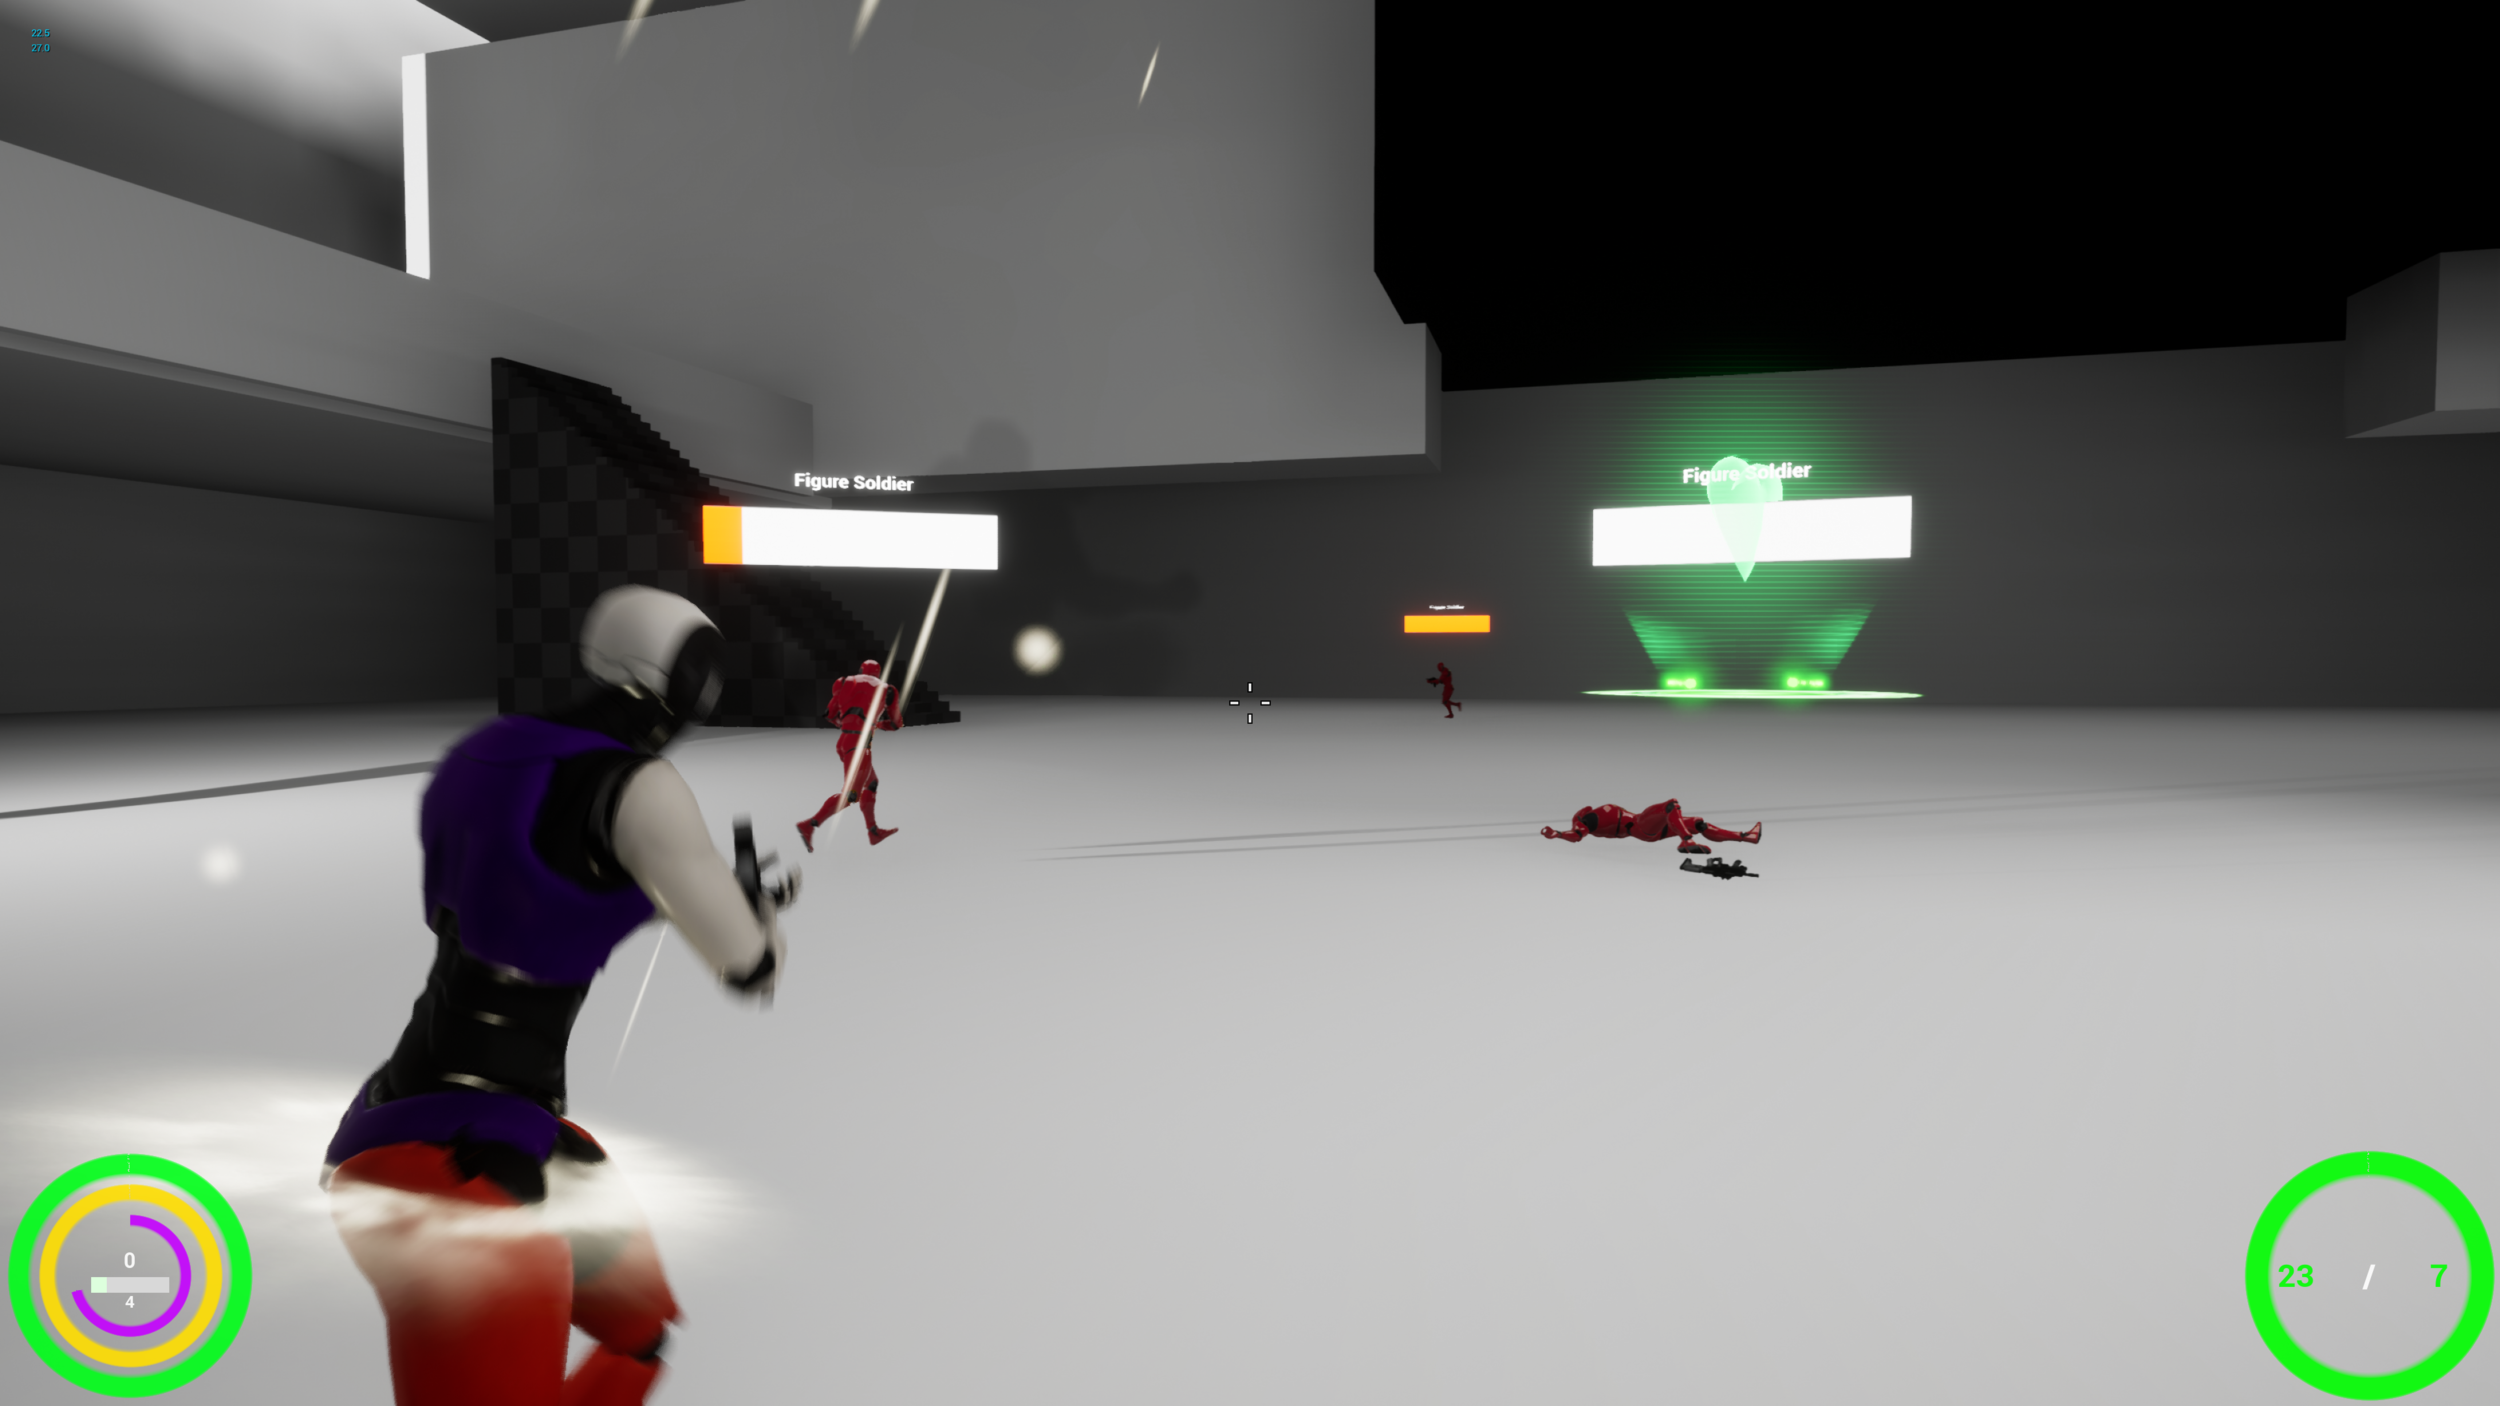 When the player activates Overdrive, there is a particle effect attached to them, adding visual feedback.